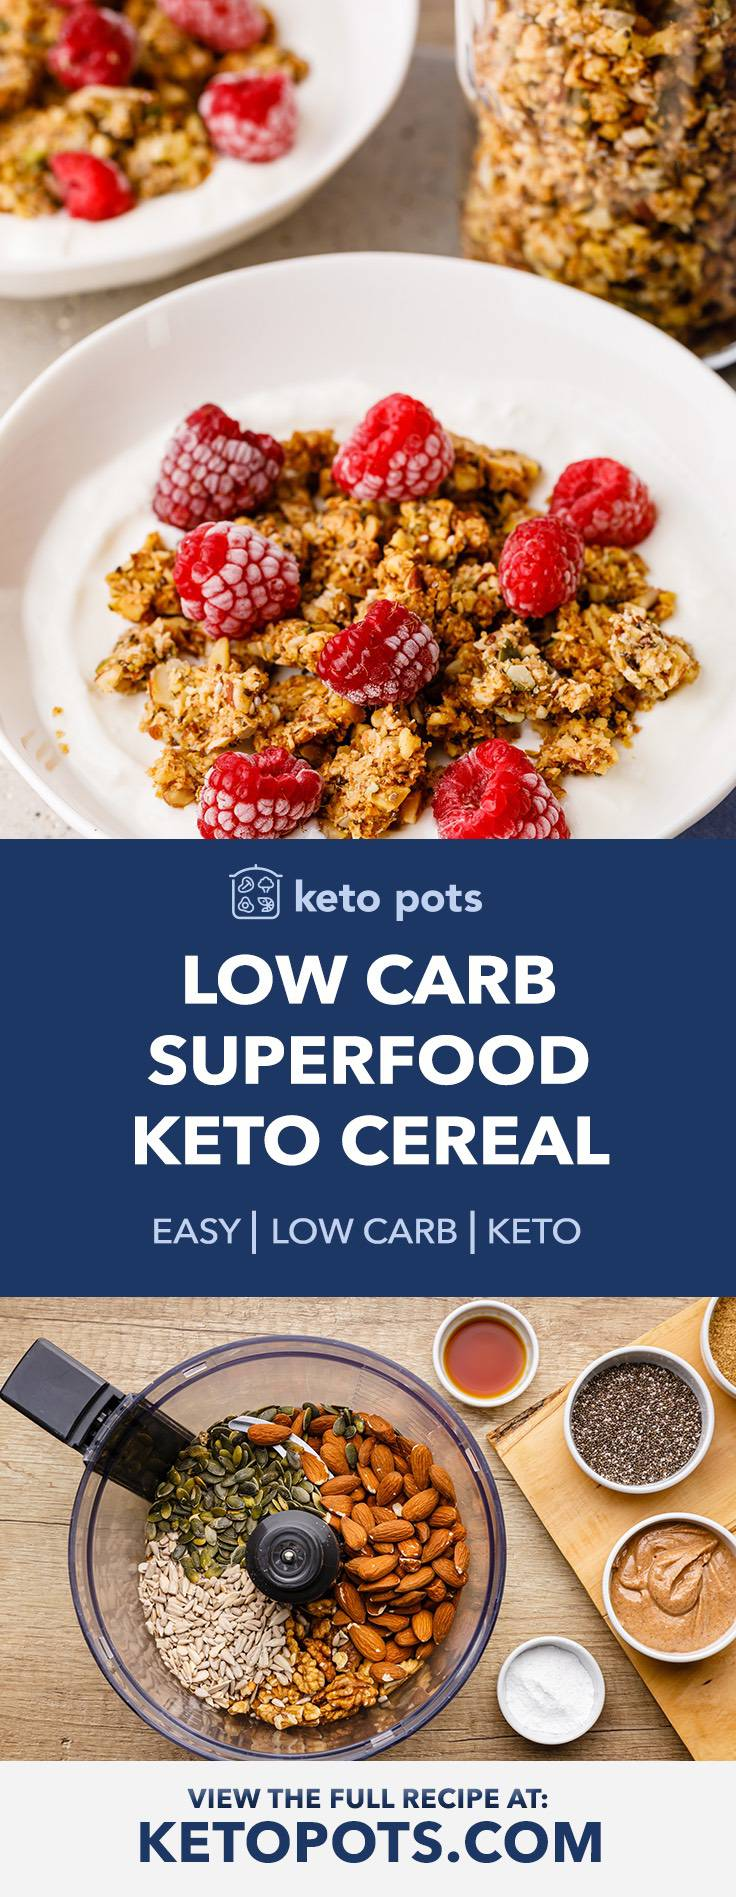 Low Carb High Protein Keto Cereal